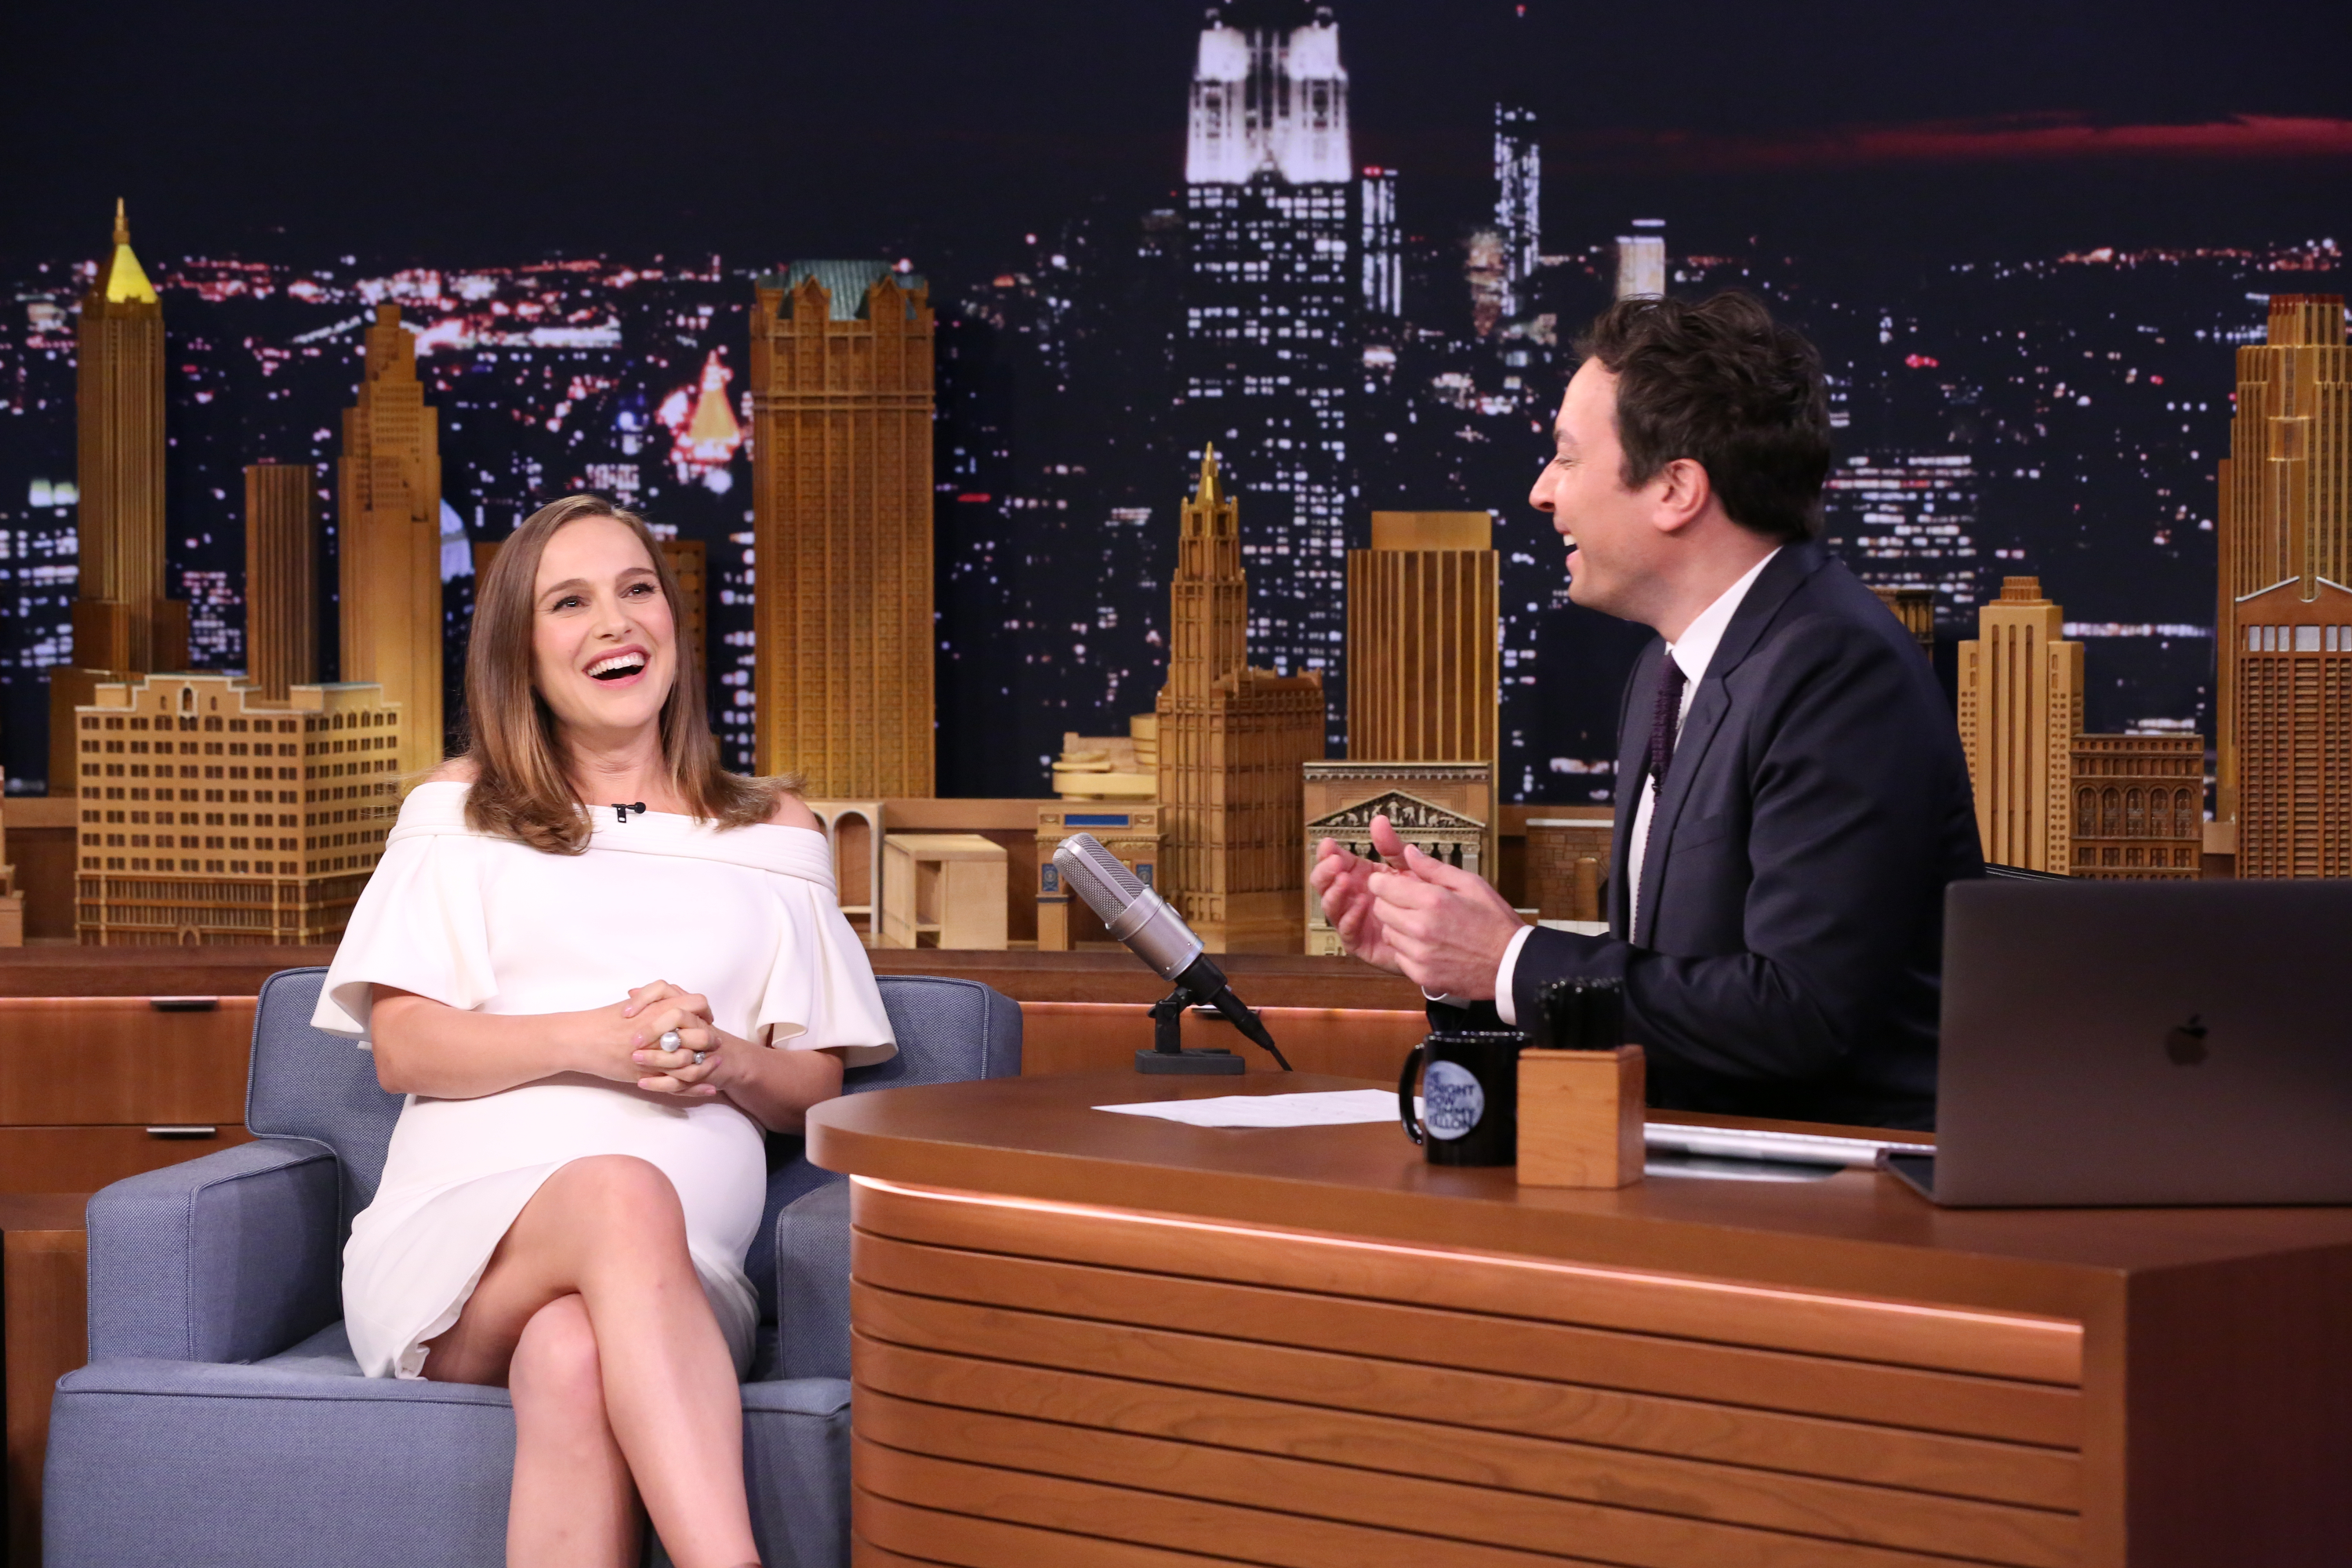 Natalie Portman wants people to calm down about her baby bump